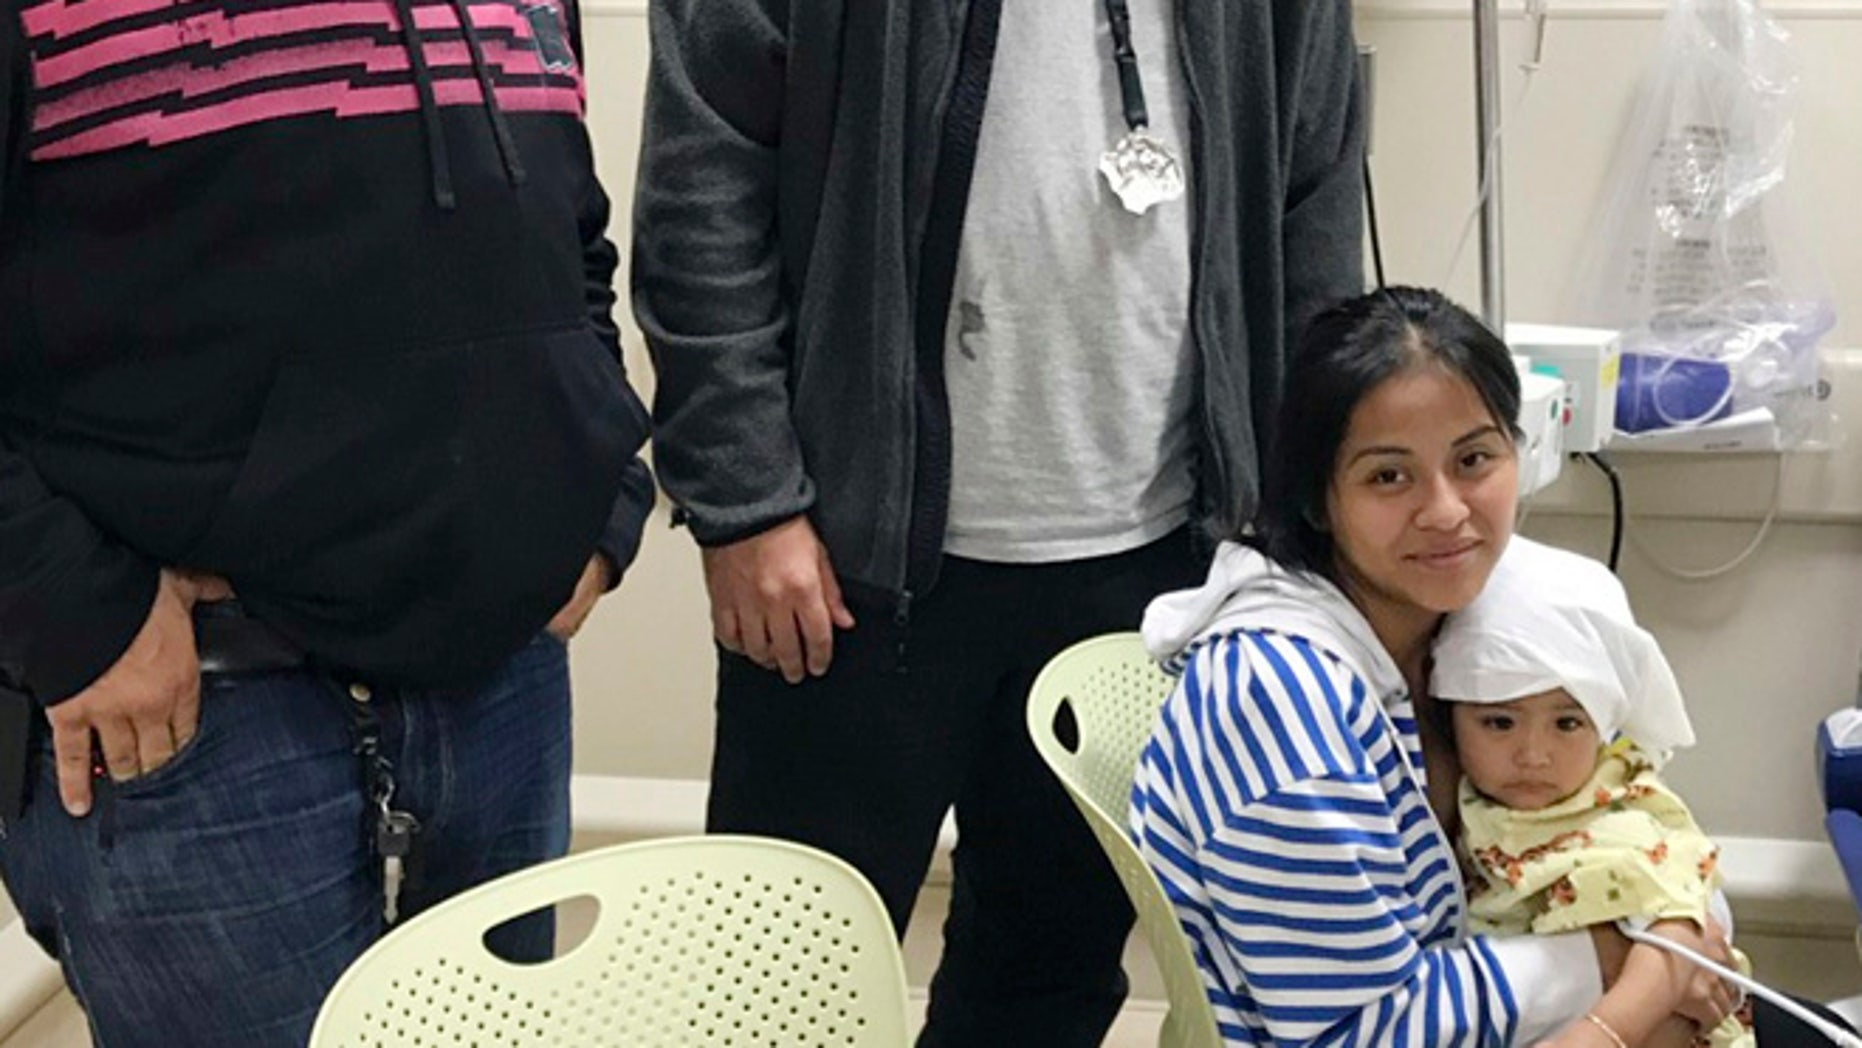 In this Oct. 14, 2016 photo released by the New York City Police Department, officers Felix Baez, left, and Giovanni Laguna pose for a photo with Lilina Benigno, and her one-year-old baby Ashley Dolores, at Lincoln Hospital in The Bronx borough of New York.  (New York City Police Department via AP)